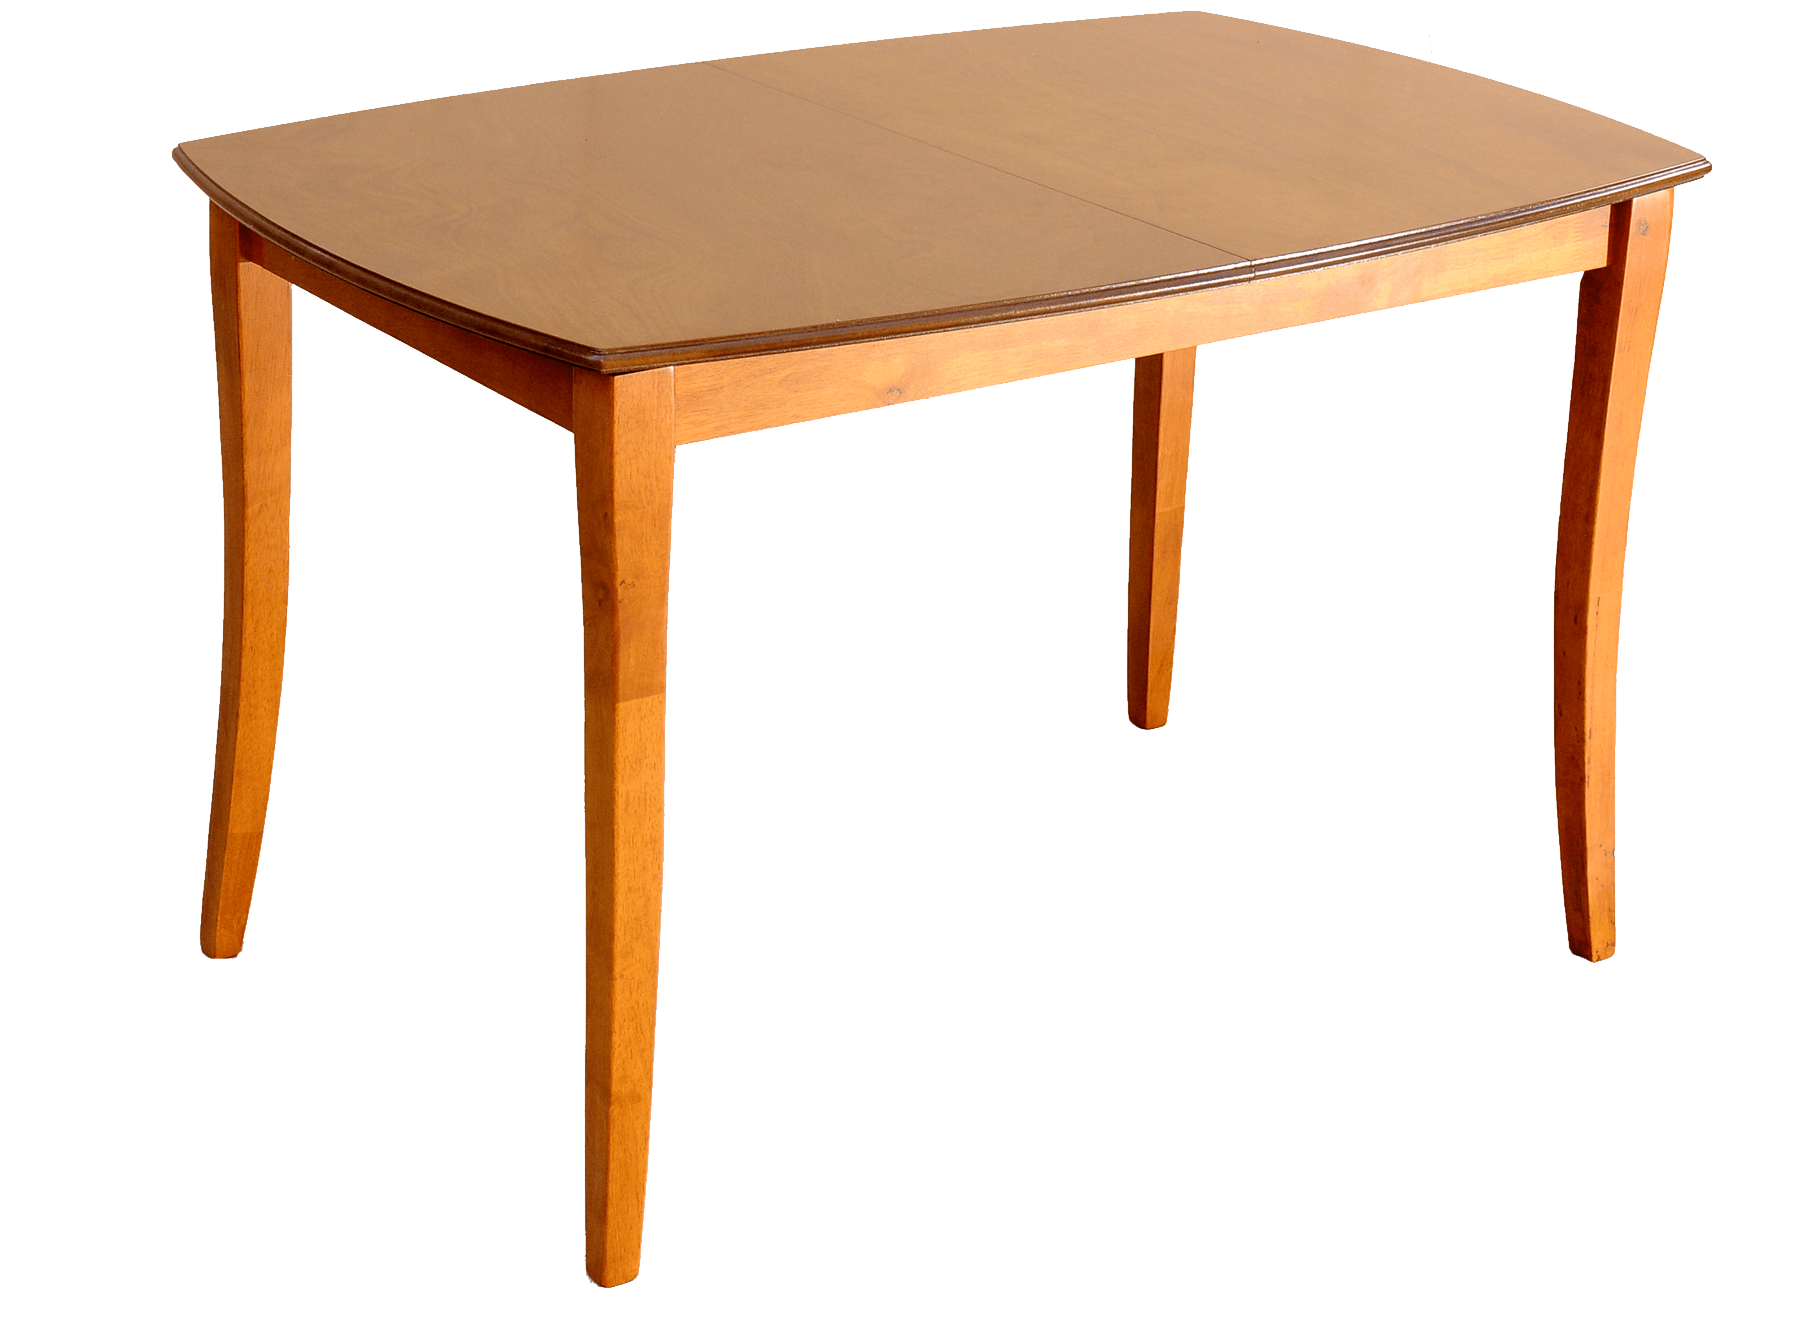 Download Wooden Table Png Image Hq Png Image Freepngimg